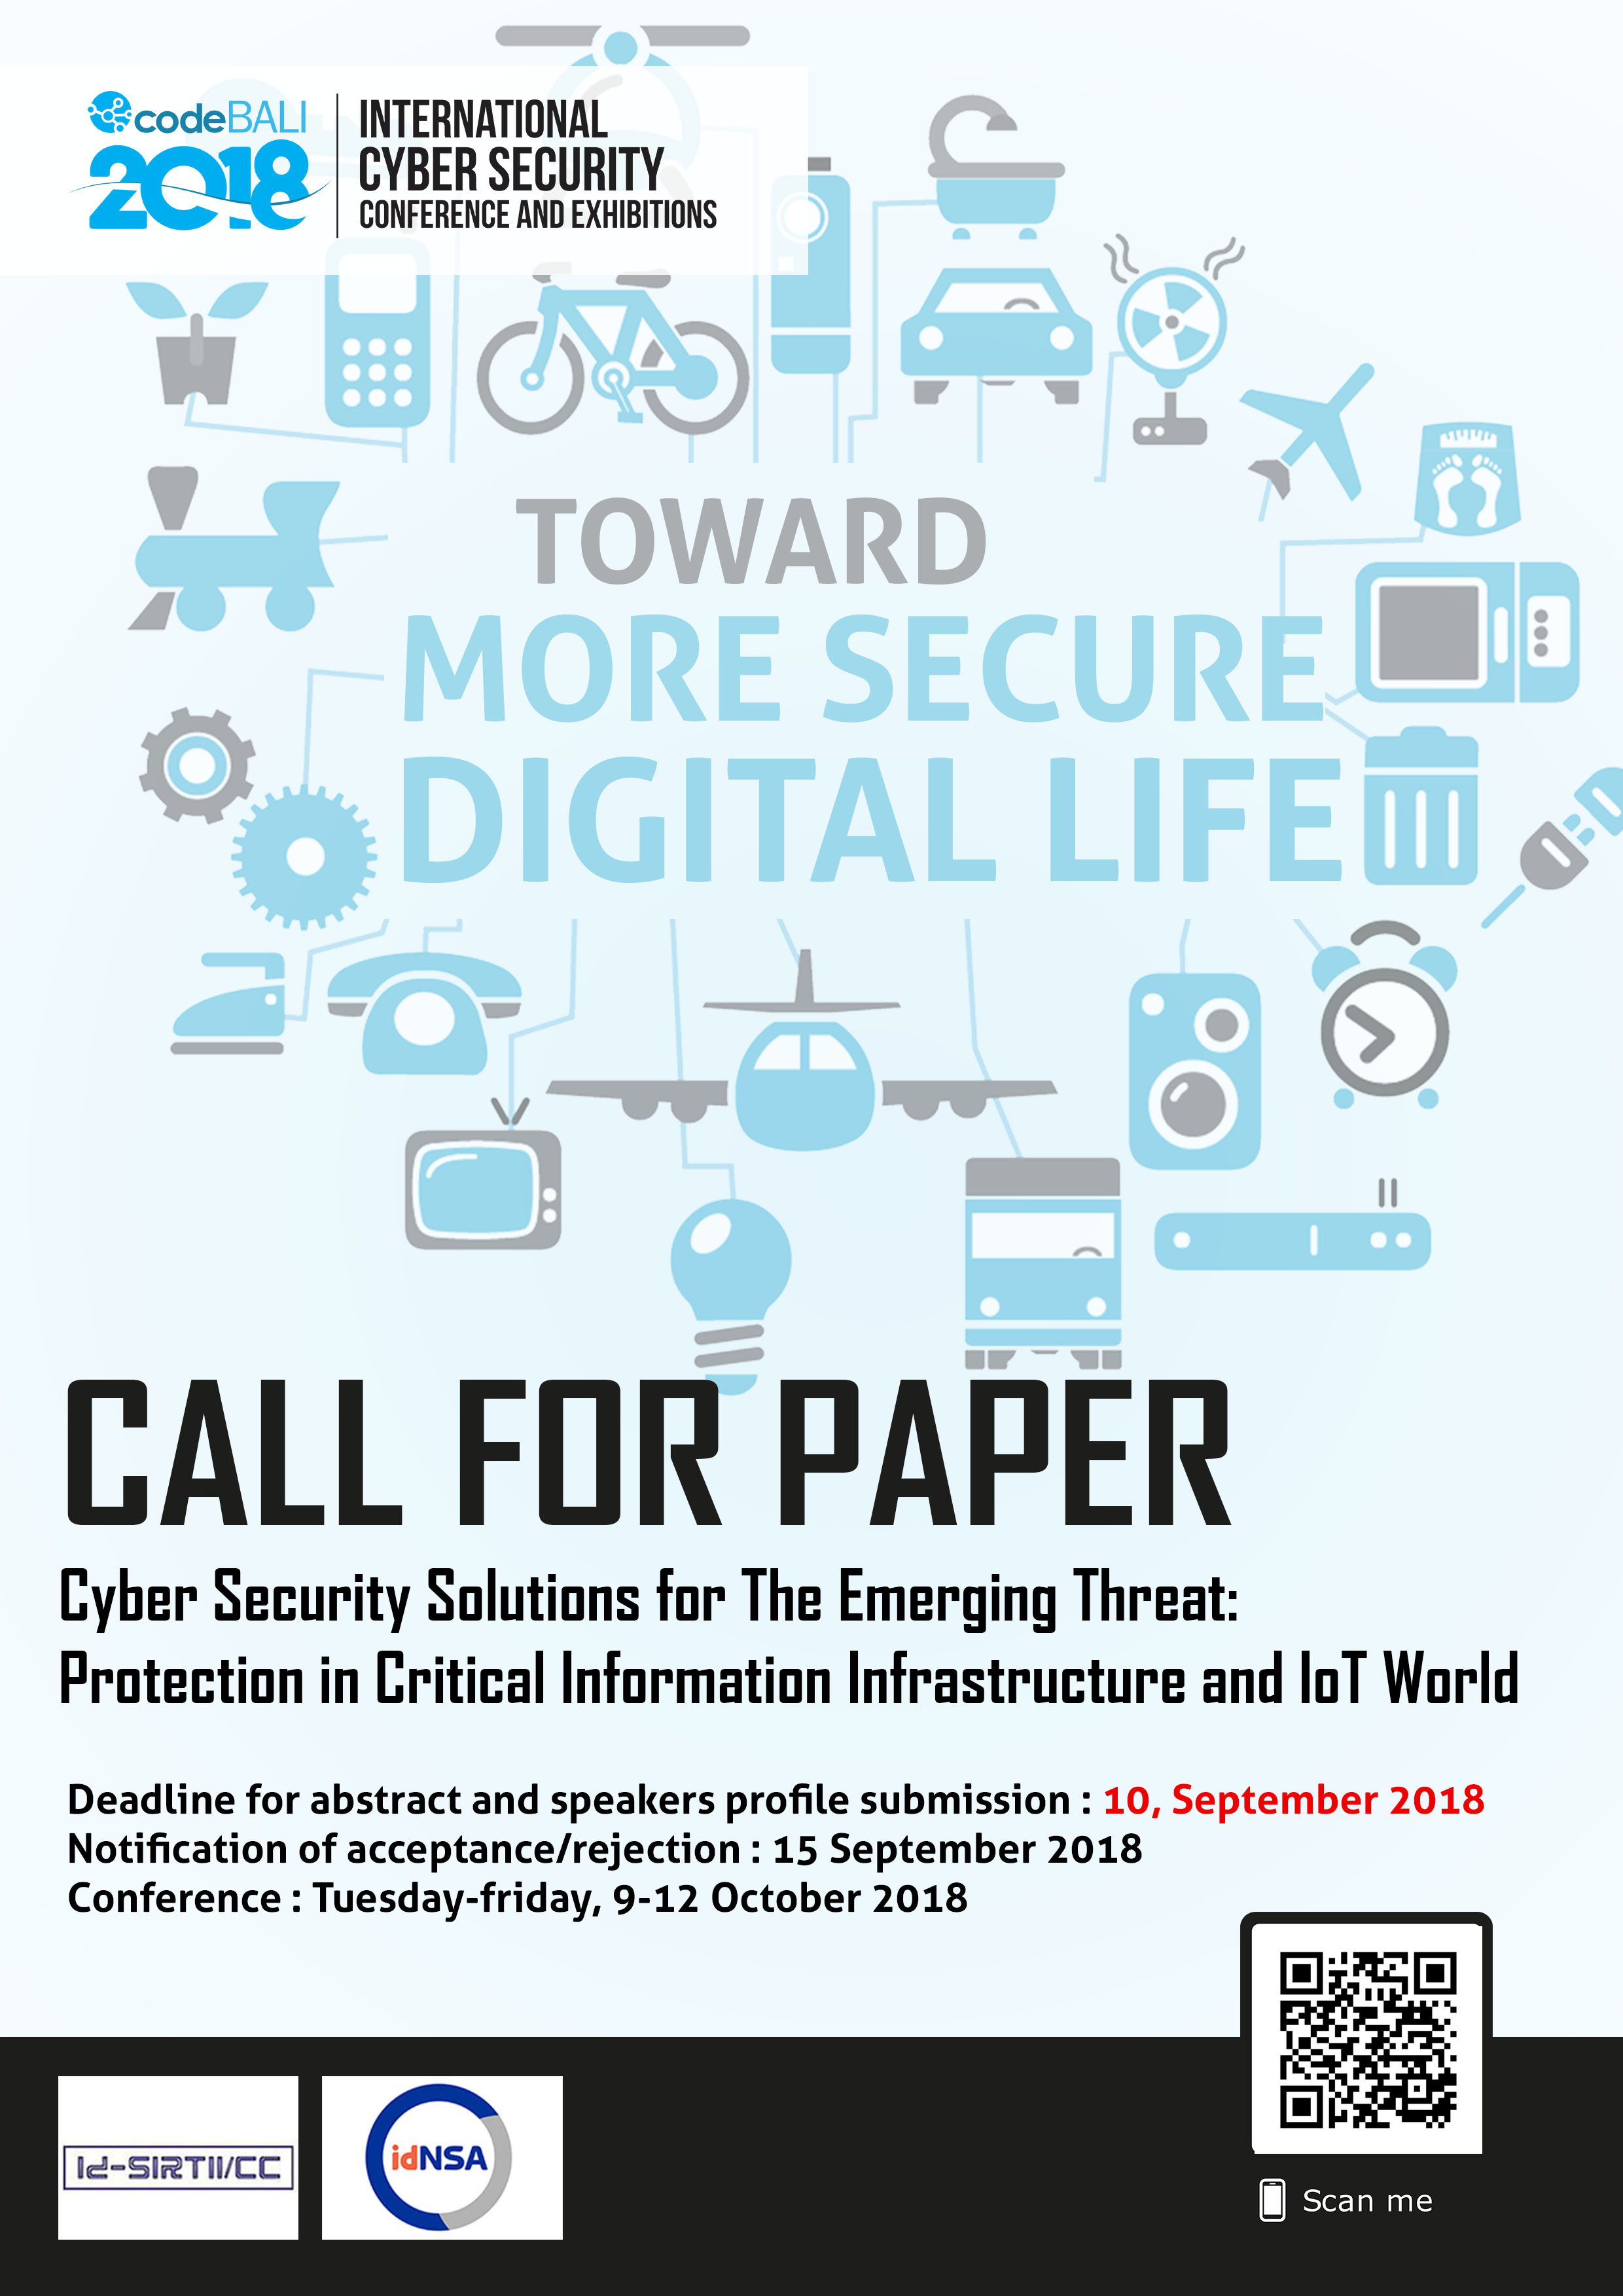 013 Research Paper Cyber Security Papers Wondrous 2018 Pdf Full